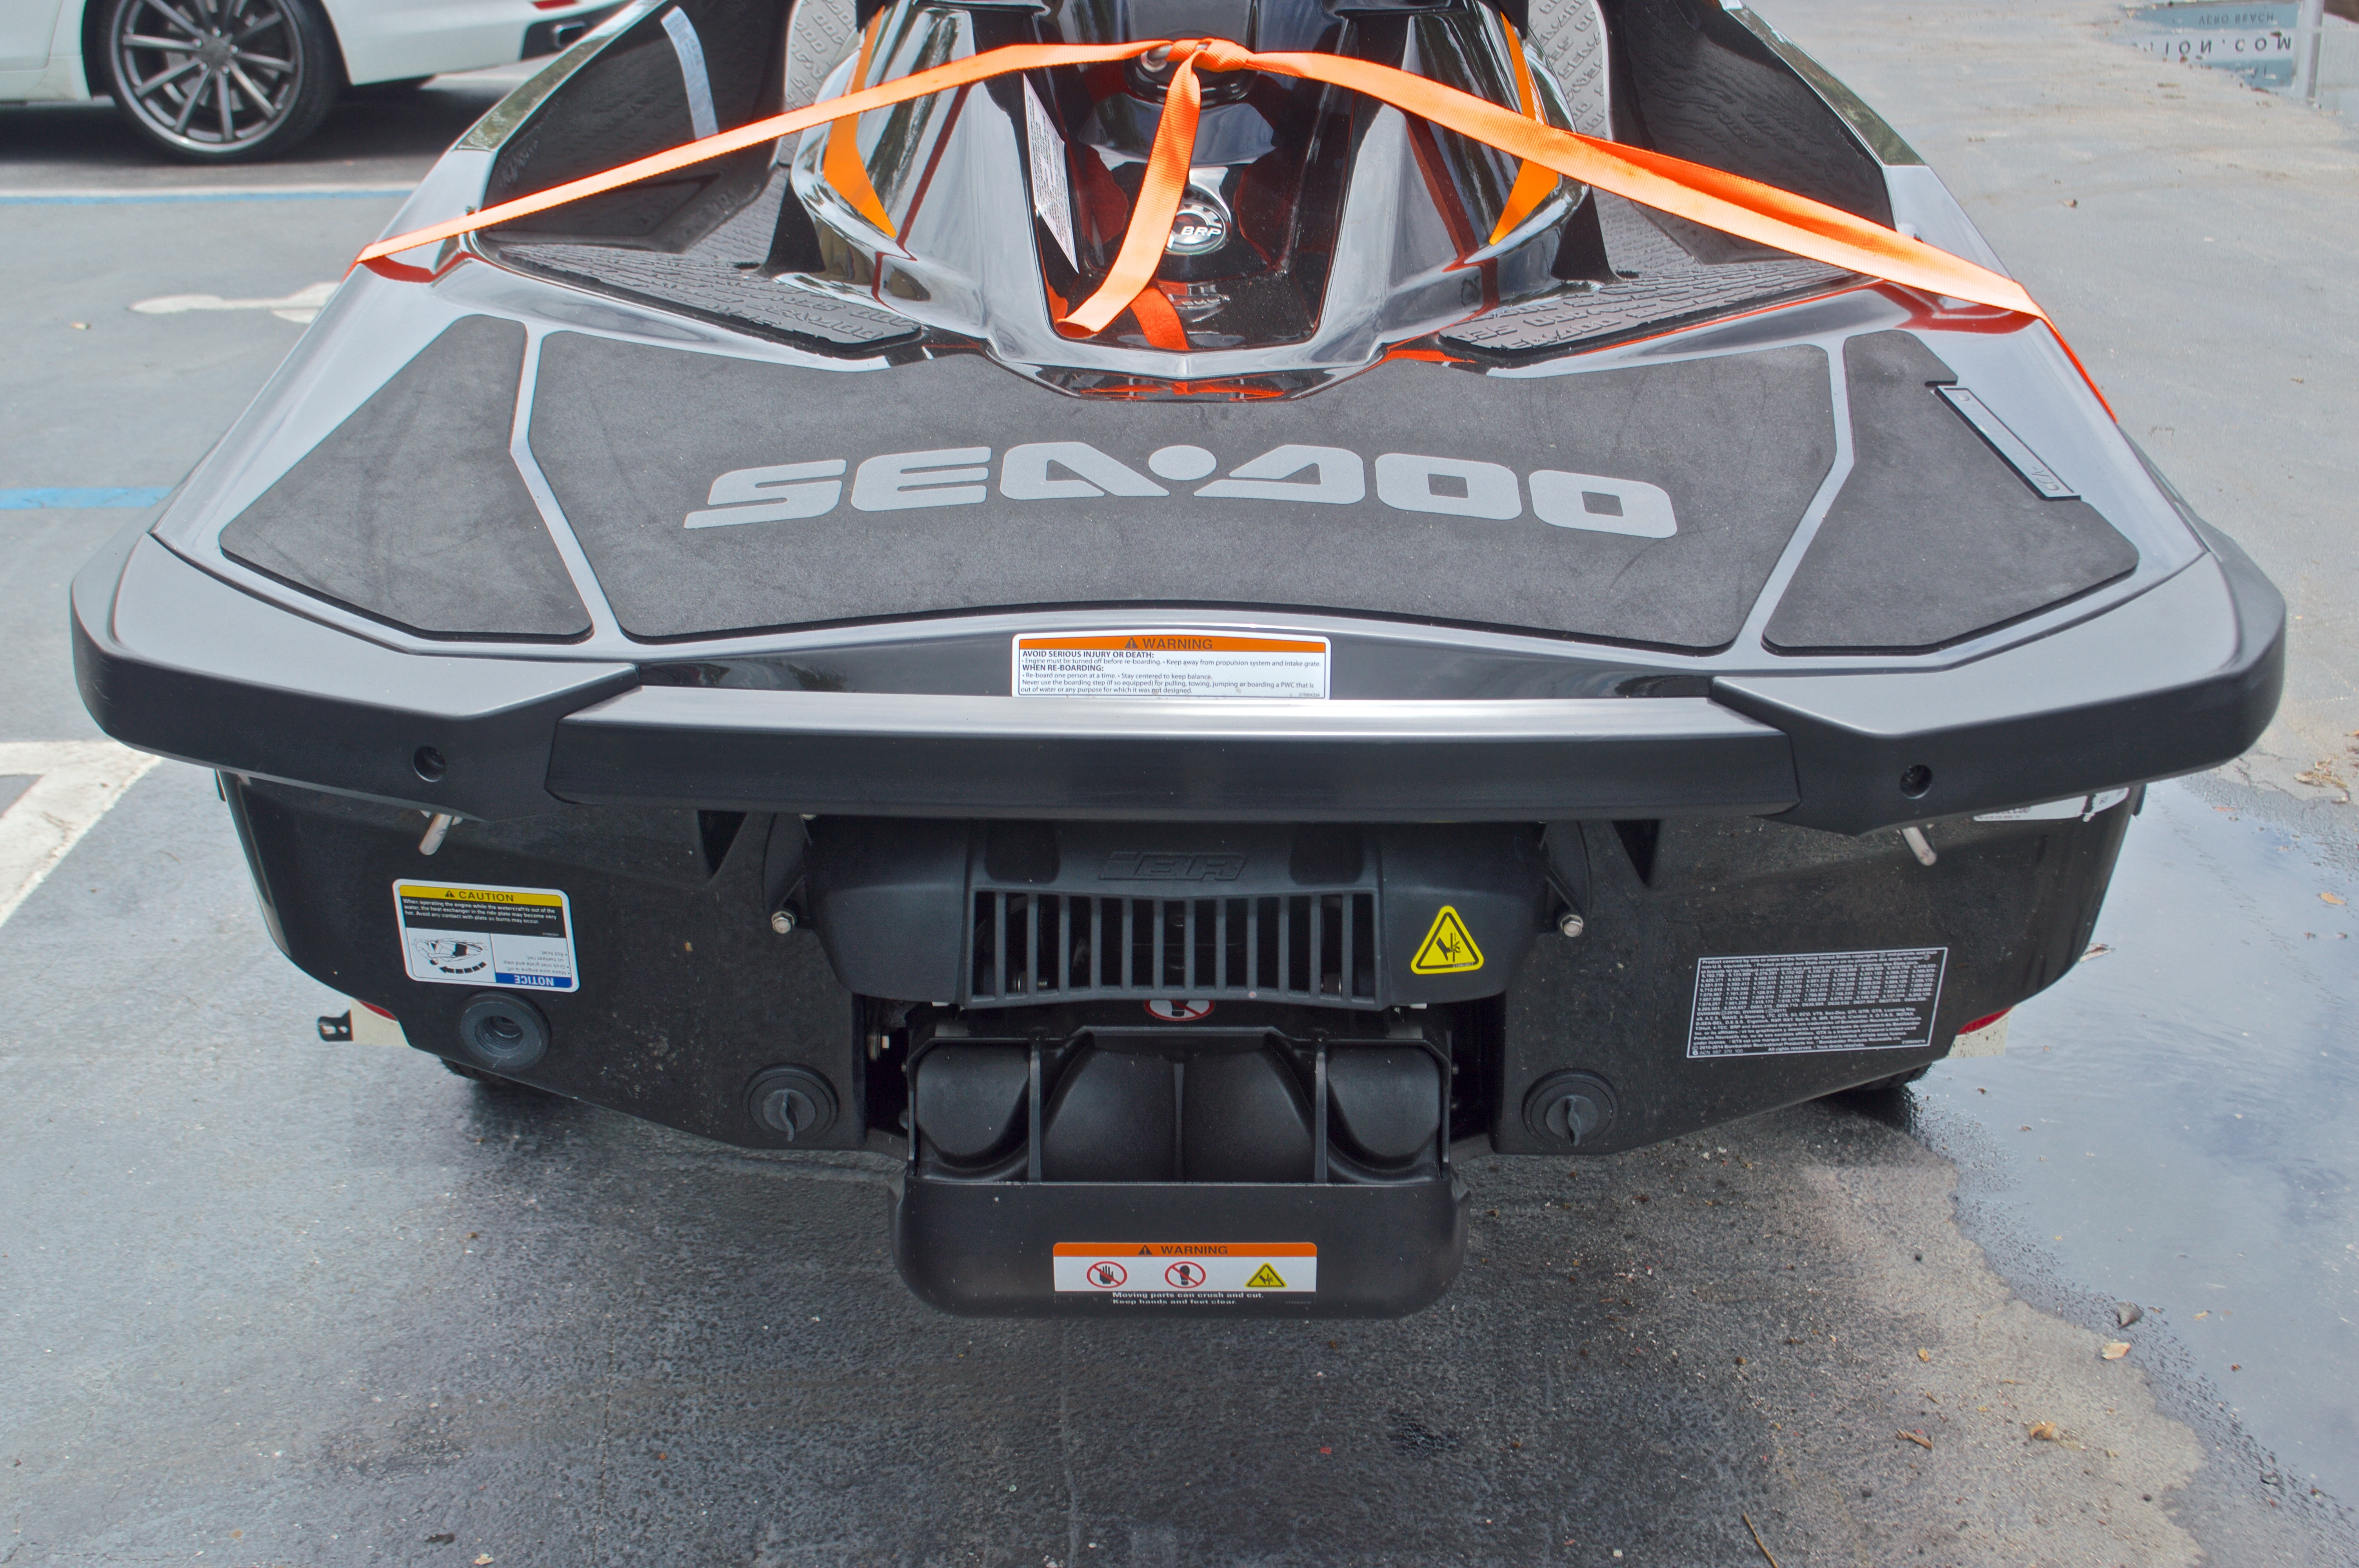 Thumbnail 8 for Used 2014 Sea-Doo GTR 215 boat for sale in West Palm Beach, FL